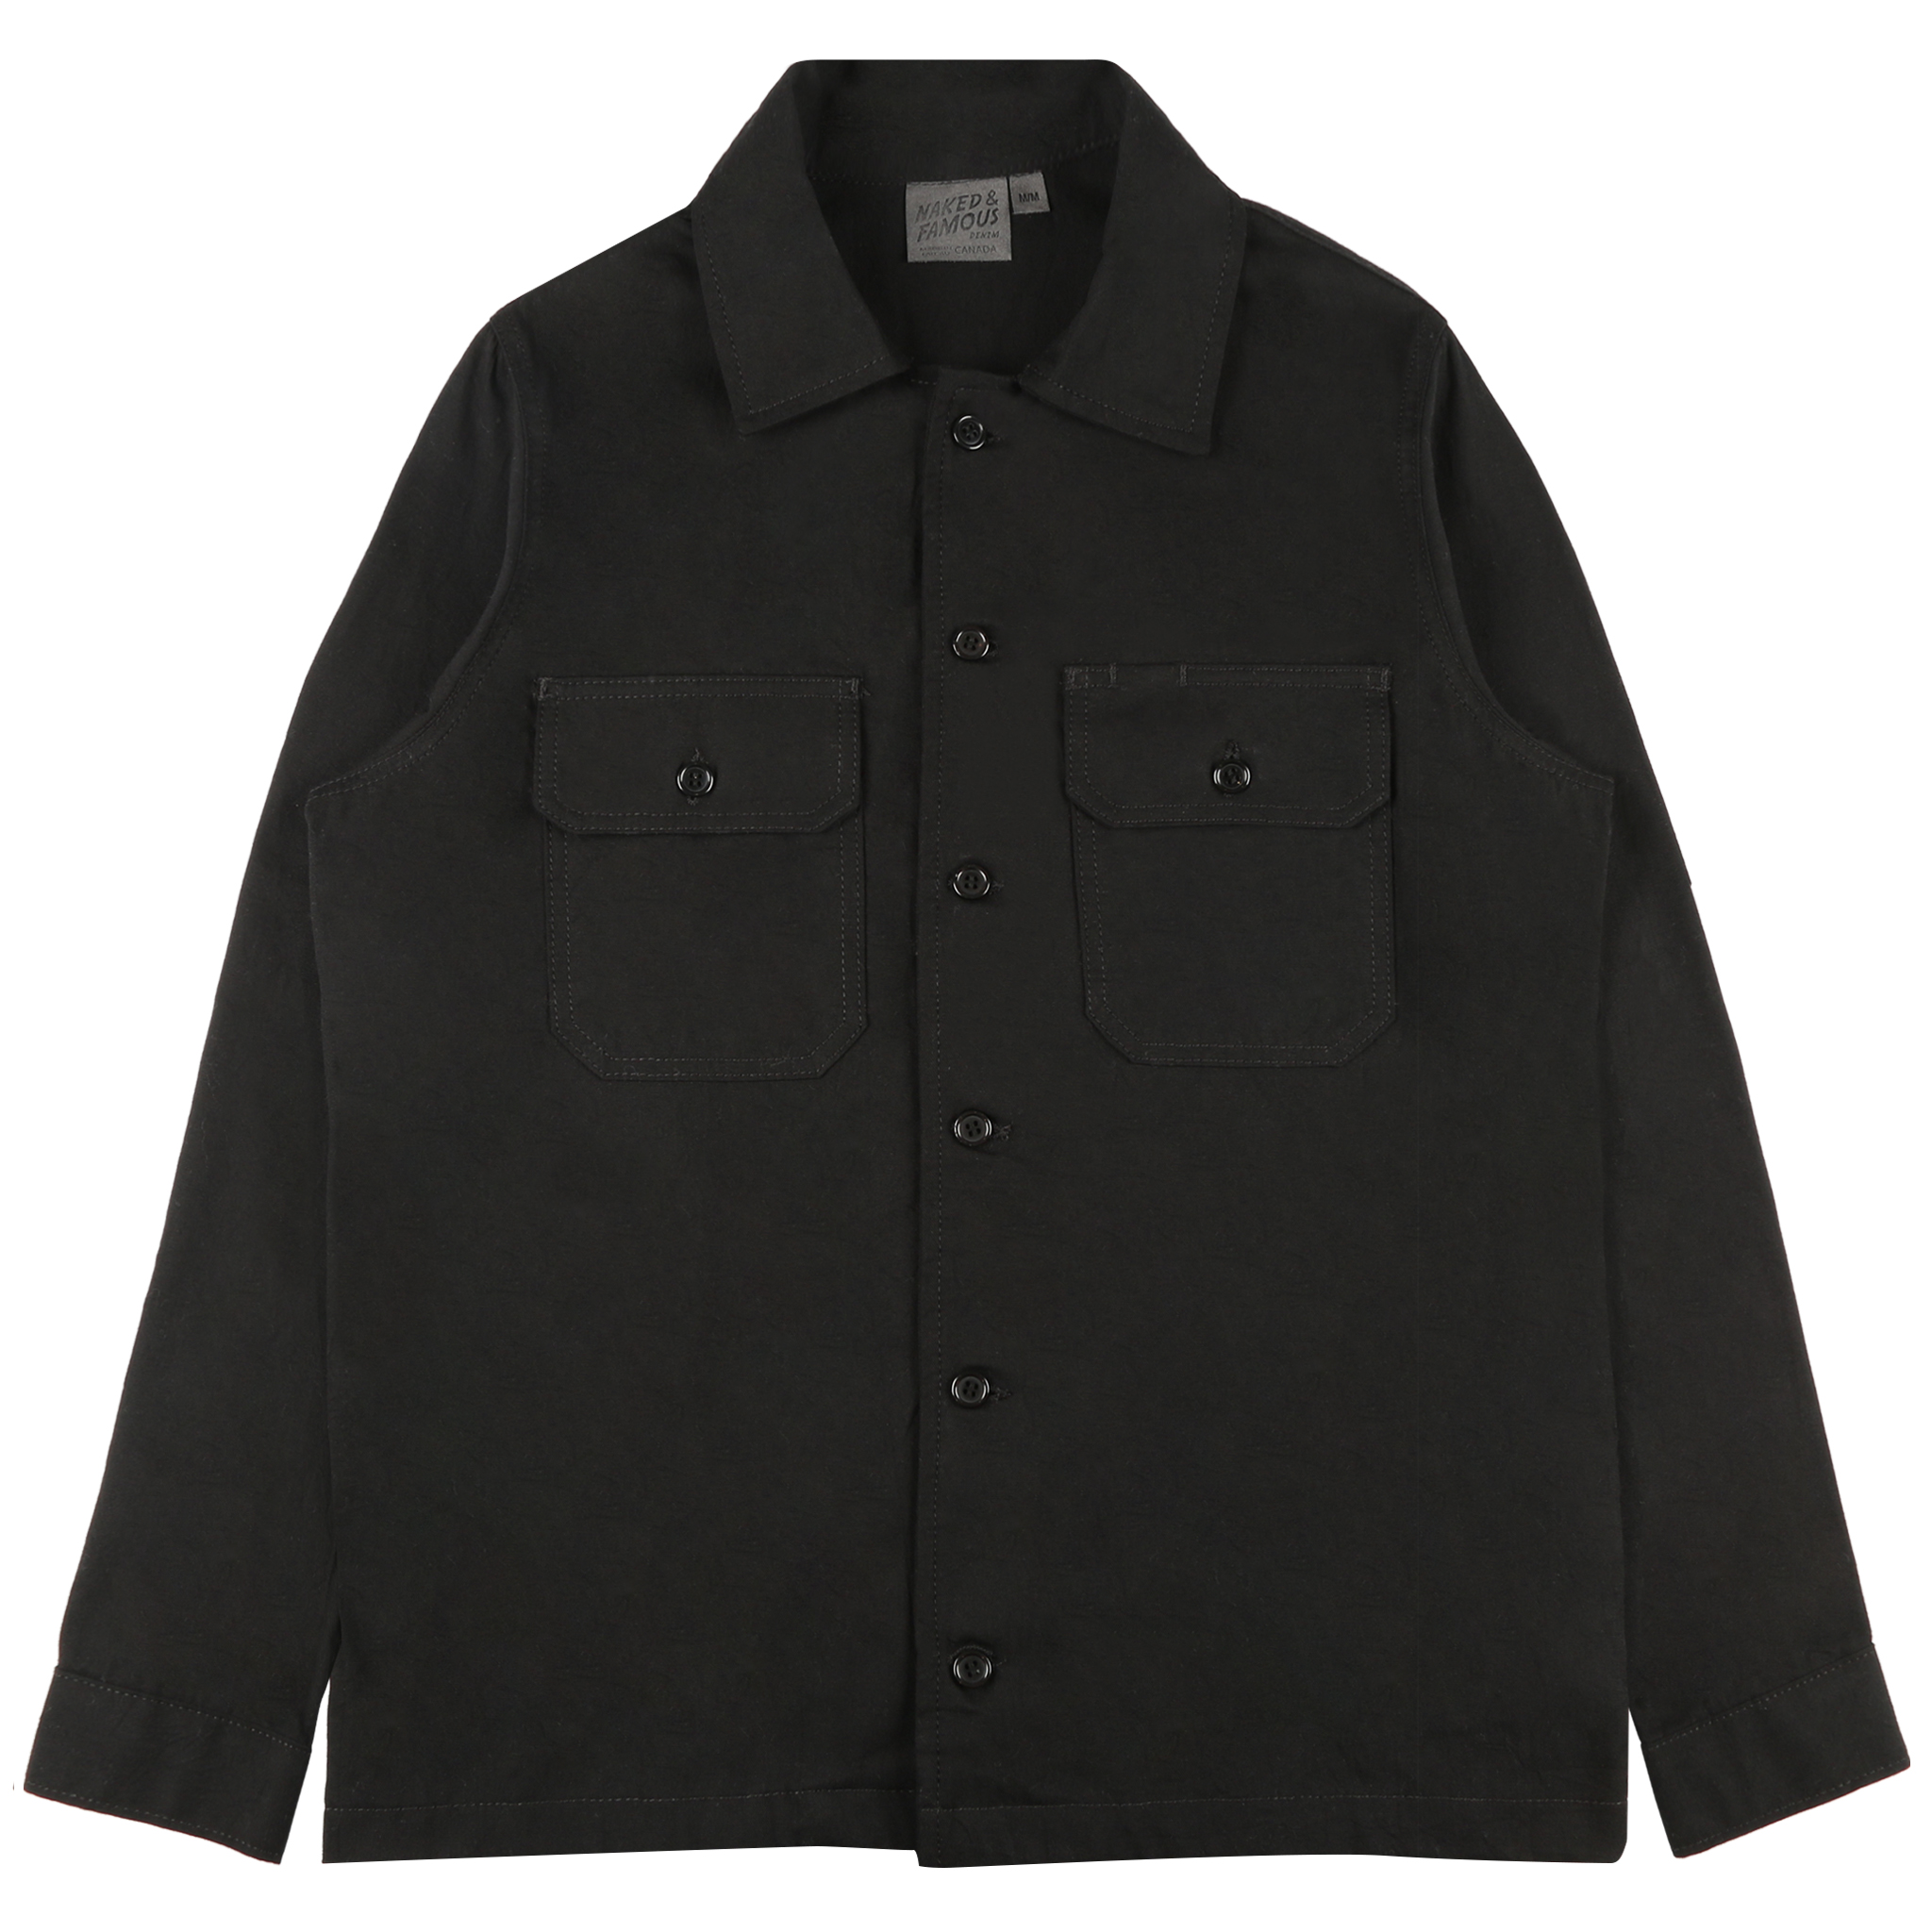 Black Workshirt Flat View